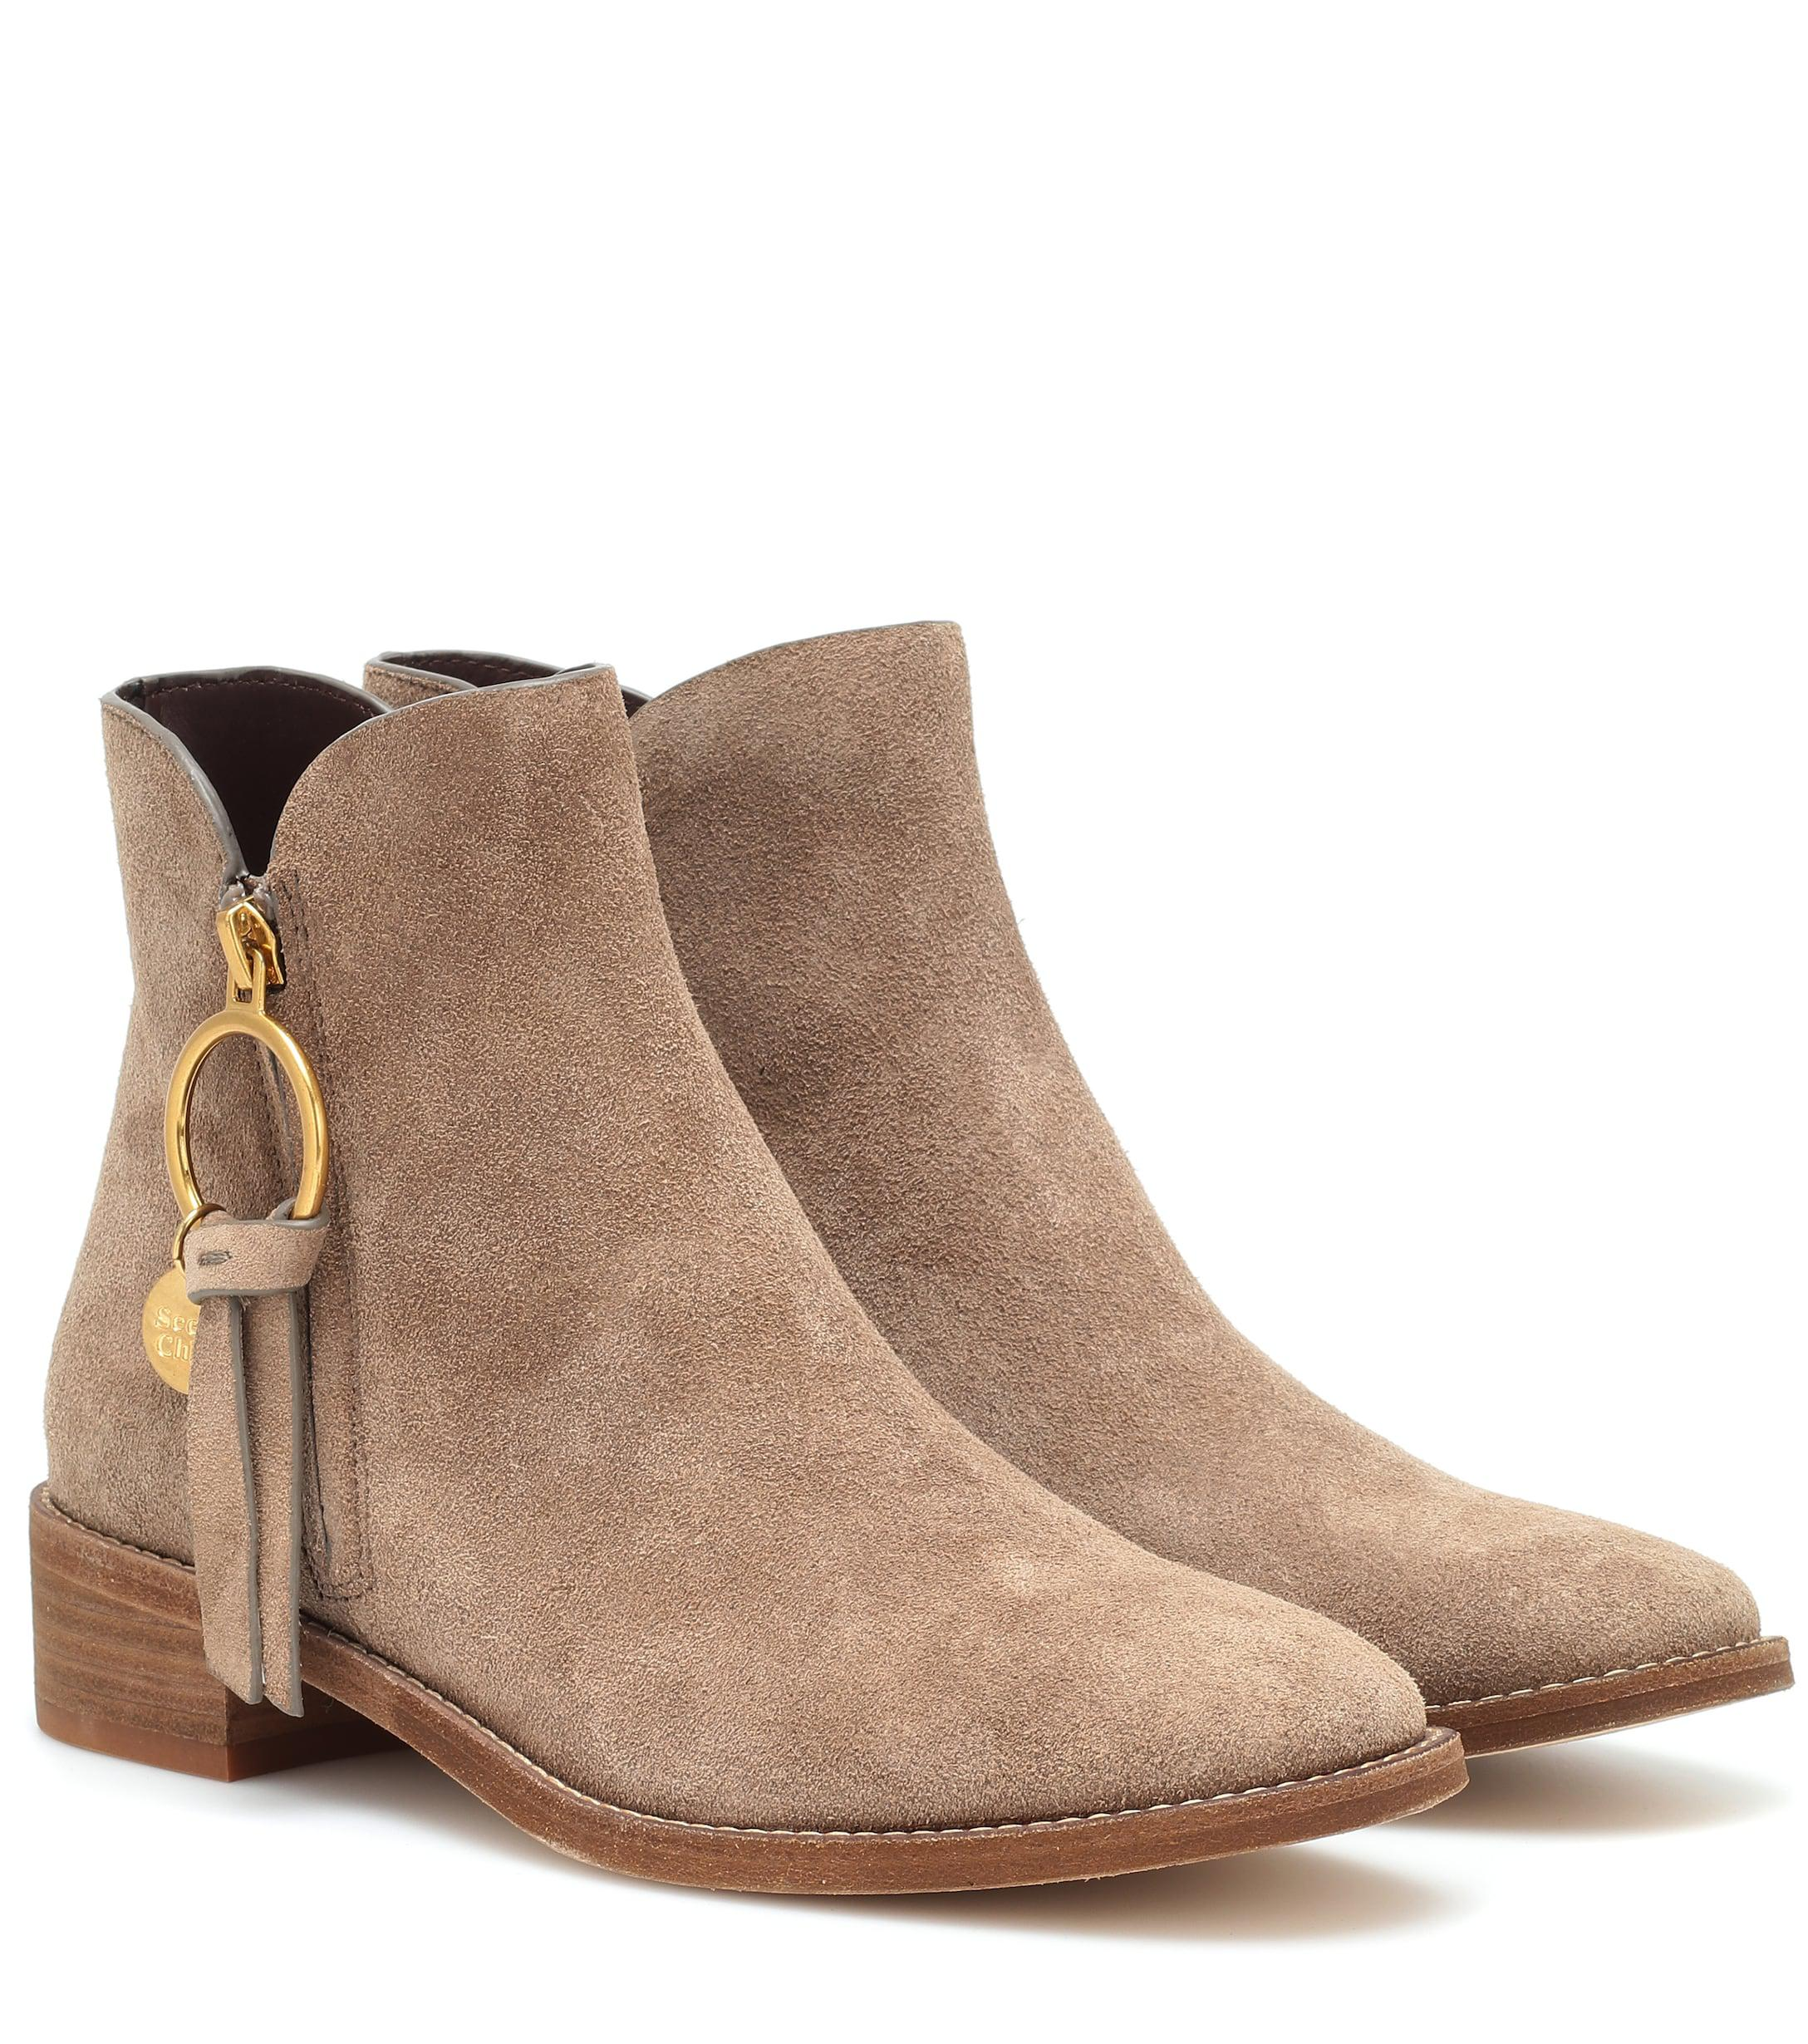 c72b59a450b29 Lyst - See By Chloé Louise Flat Suede Ankle Boots in Brown